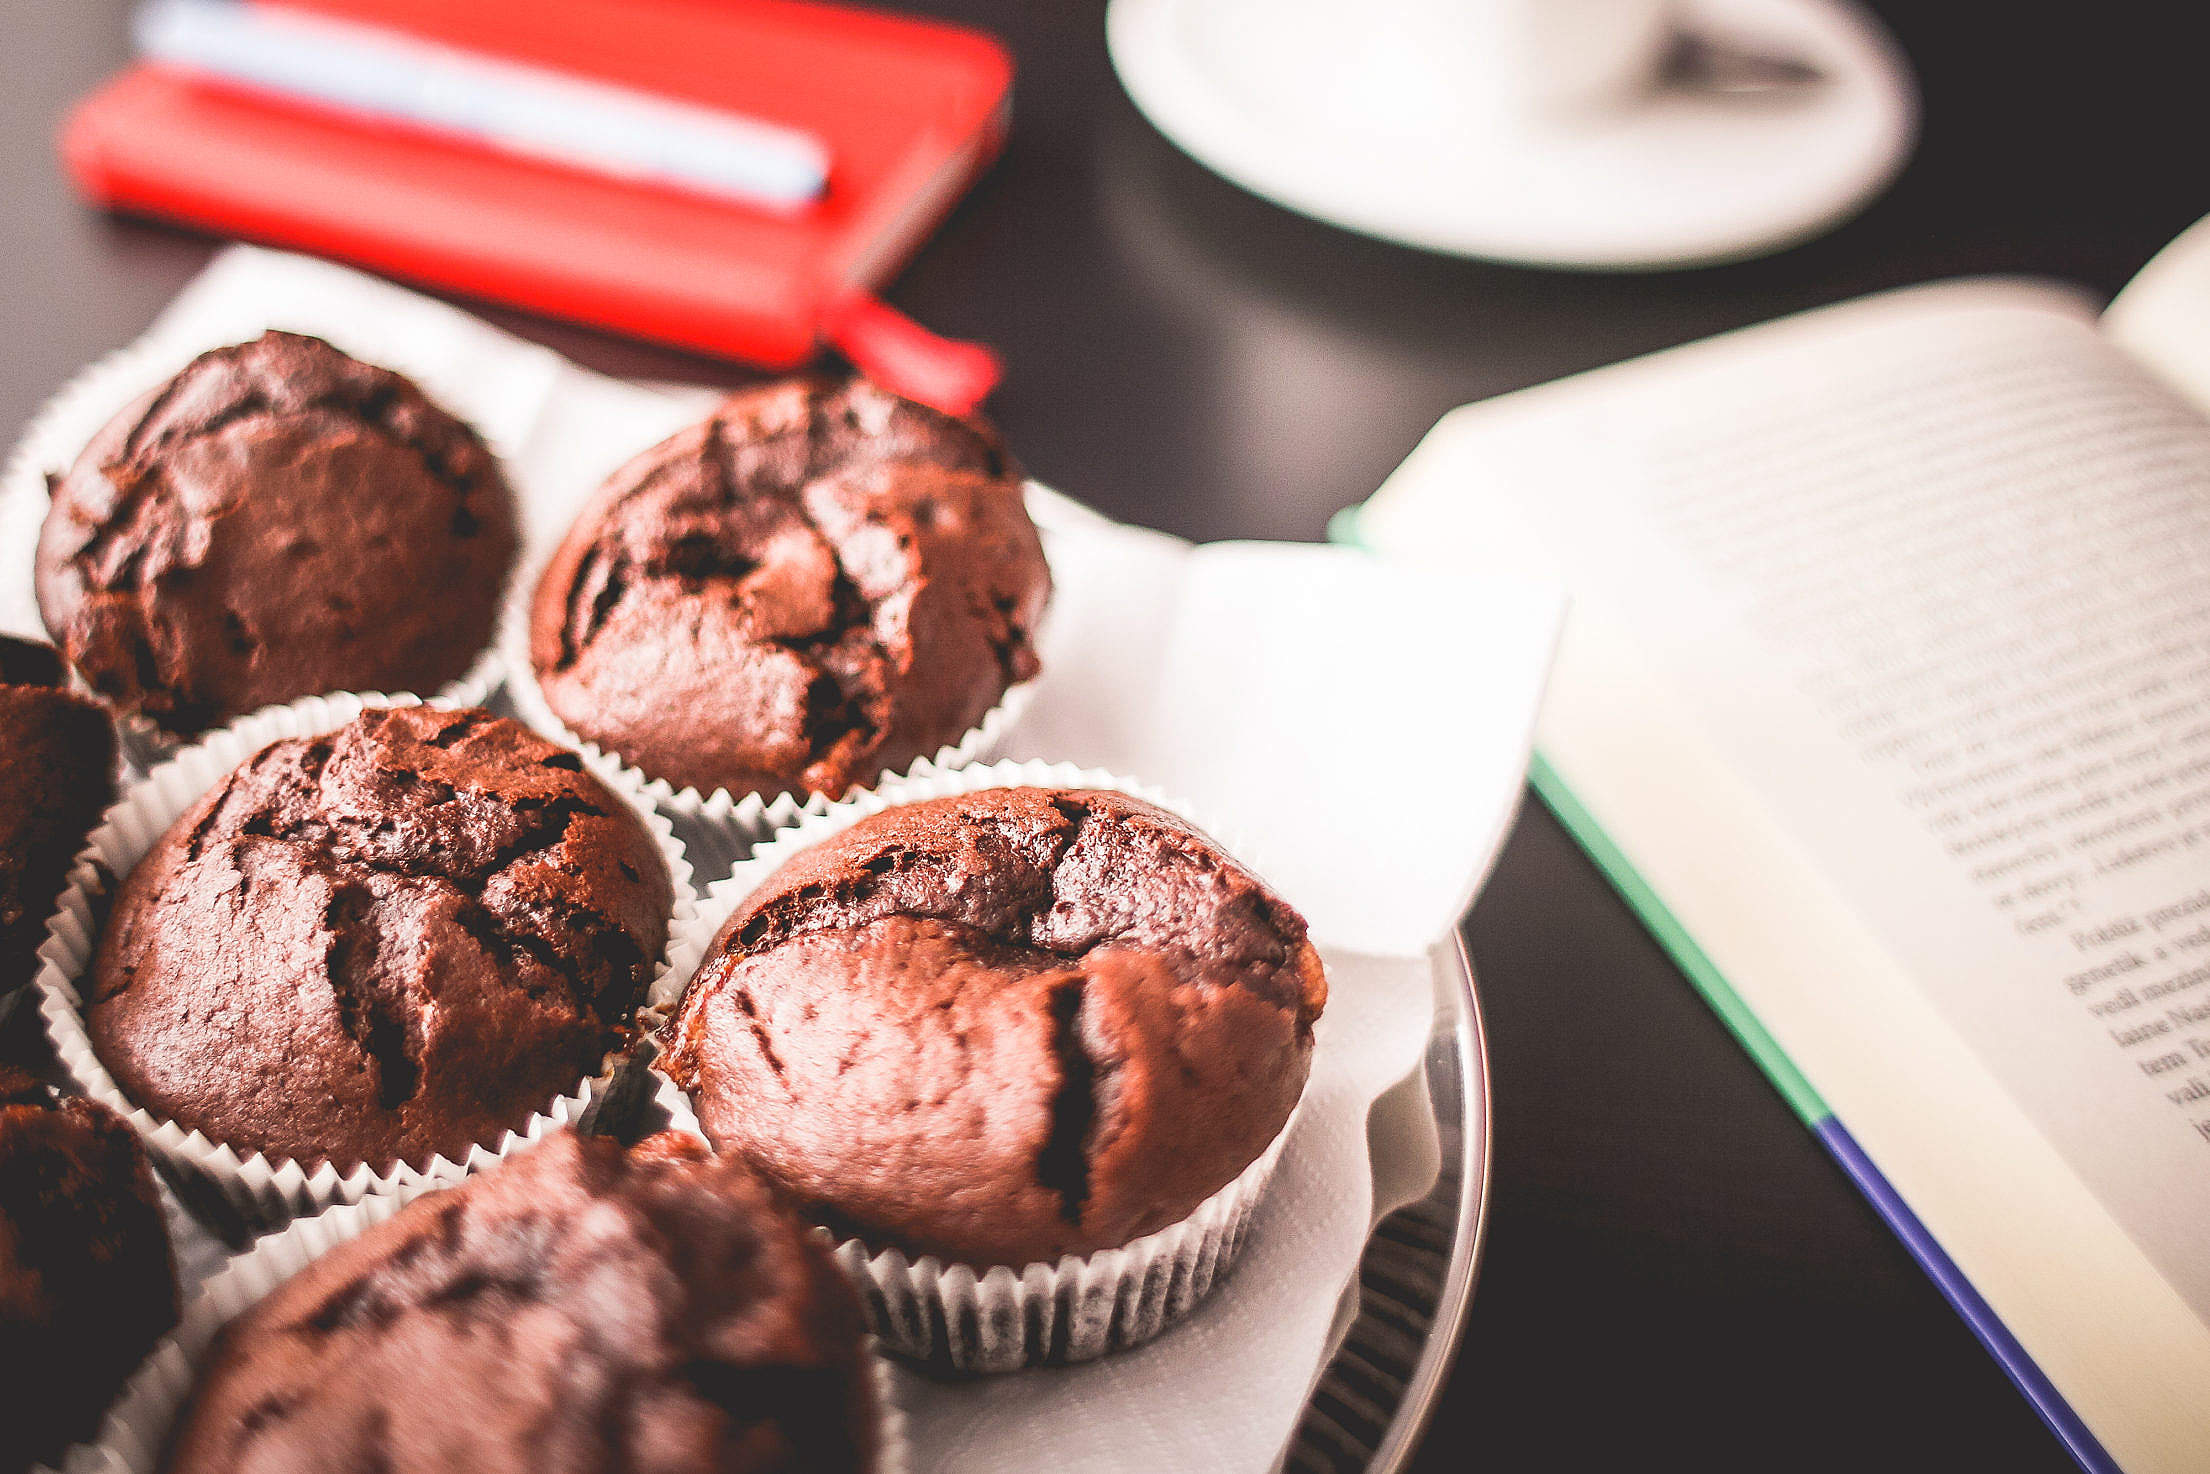 Sweet Muffins with A Book Free Stock Photo